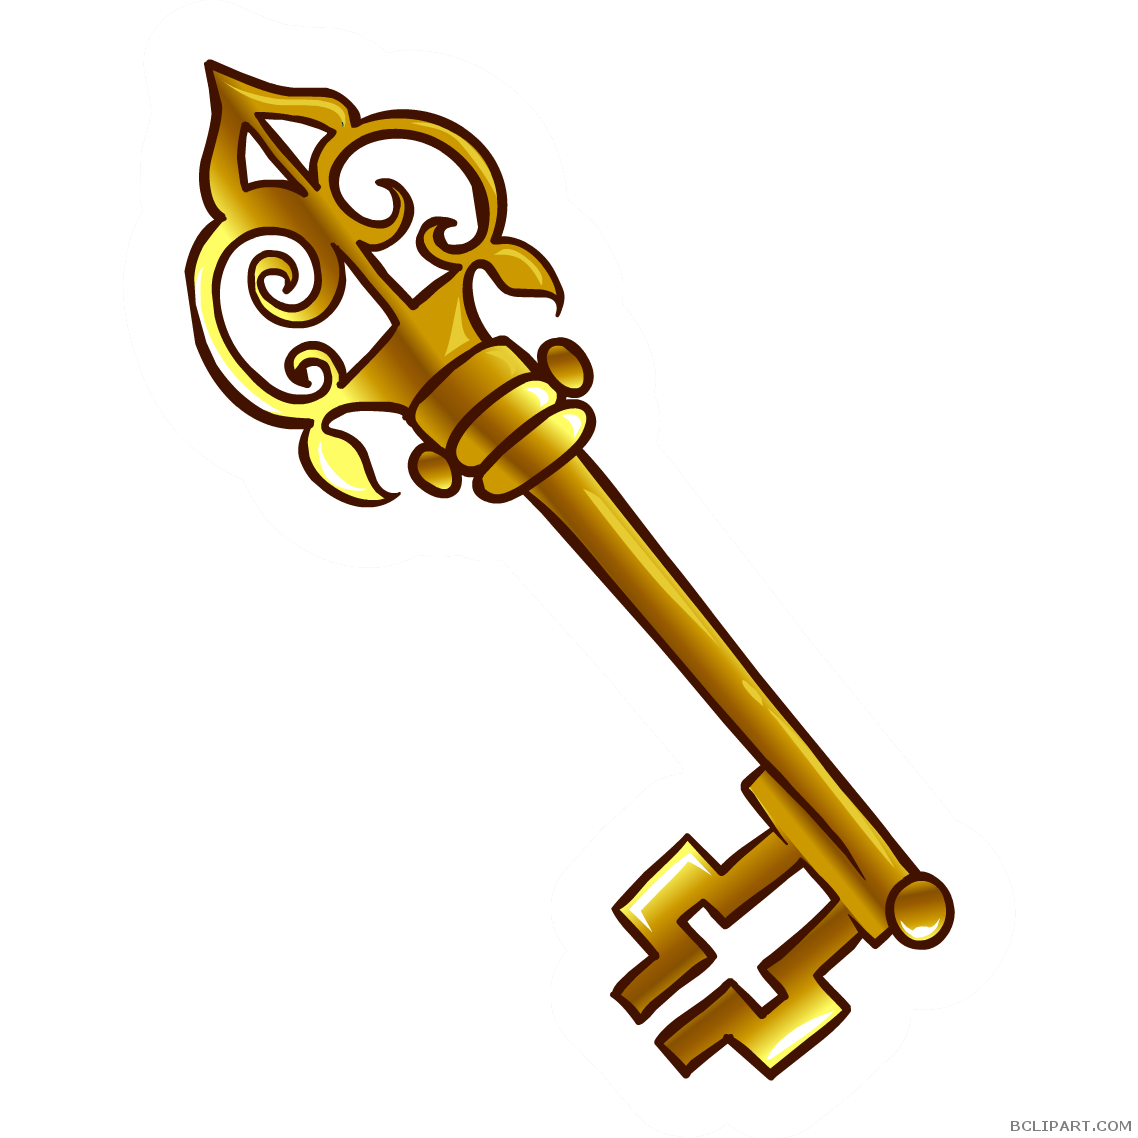 graphic stock Bclipart tools free images. Old key clipart